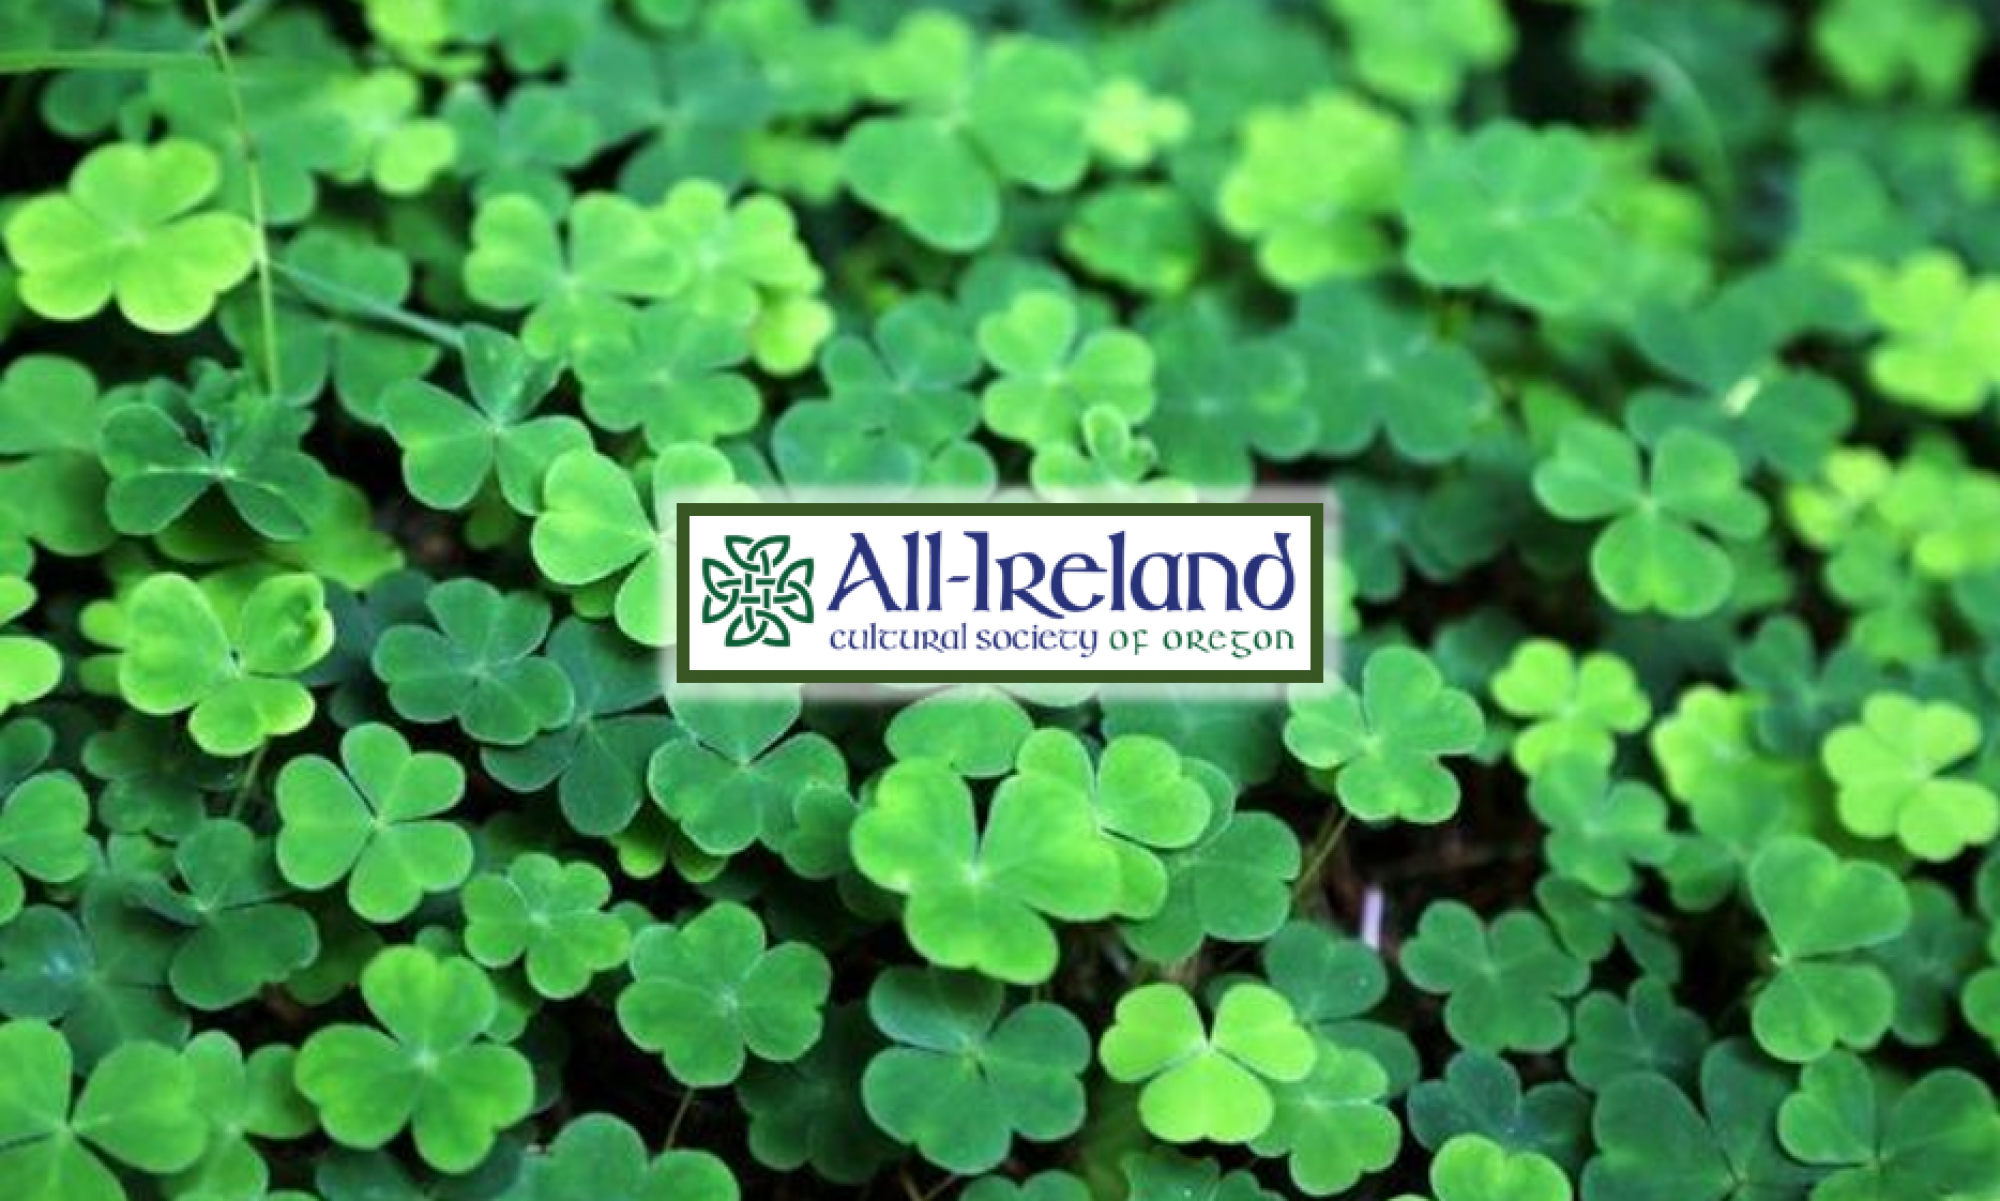 All-Ireland Cultural Society of Oregon